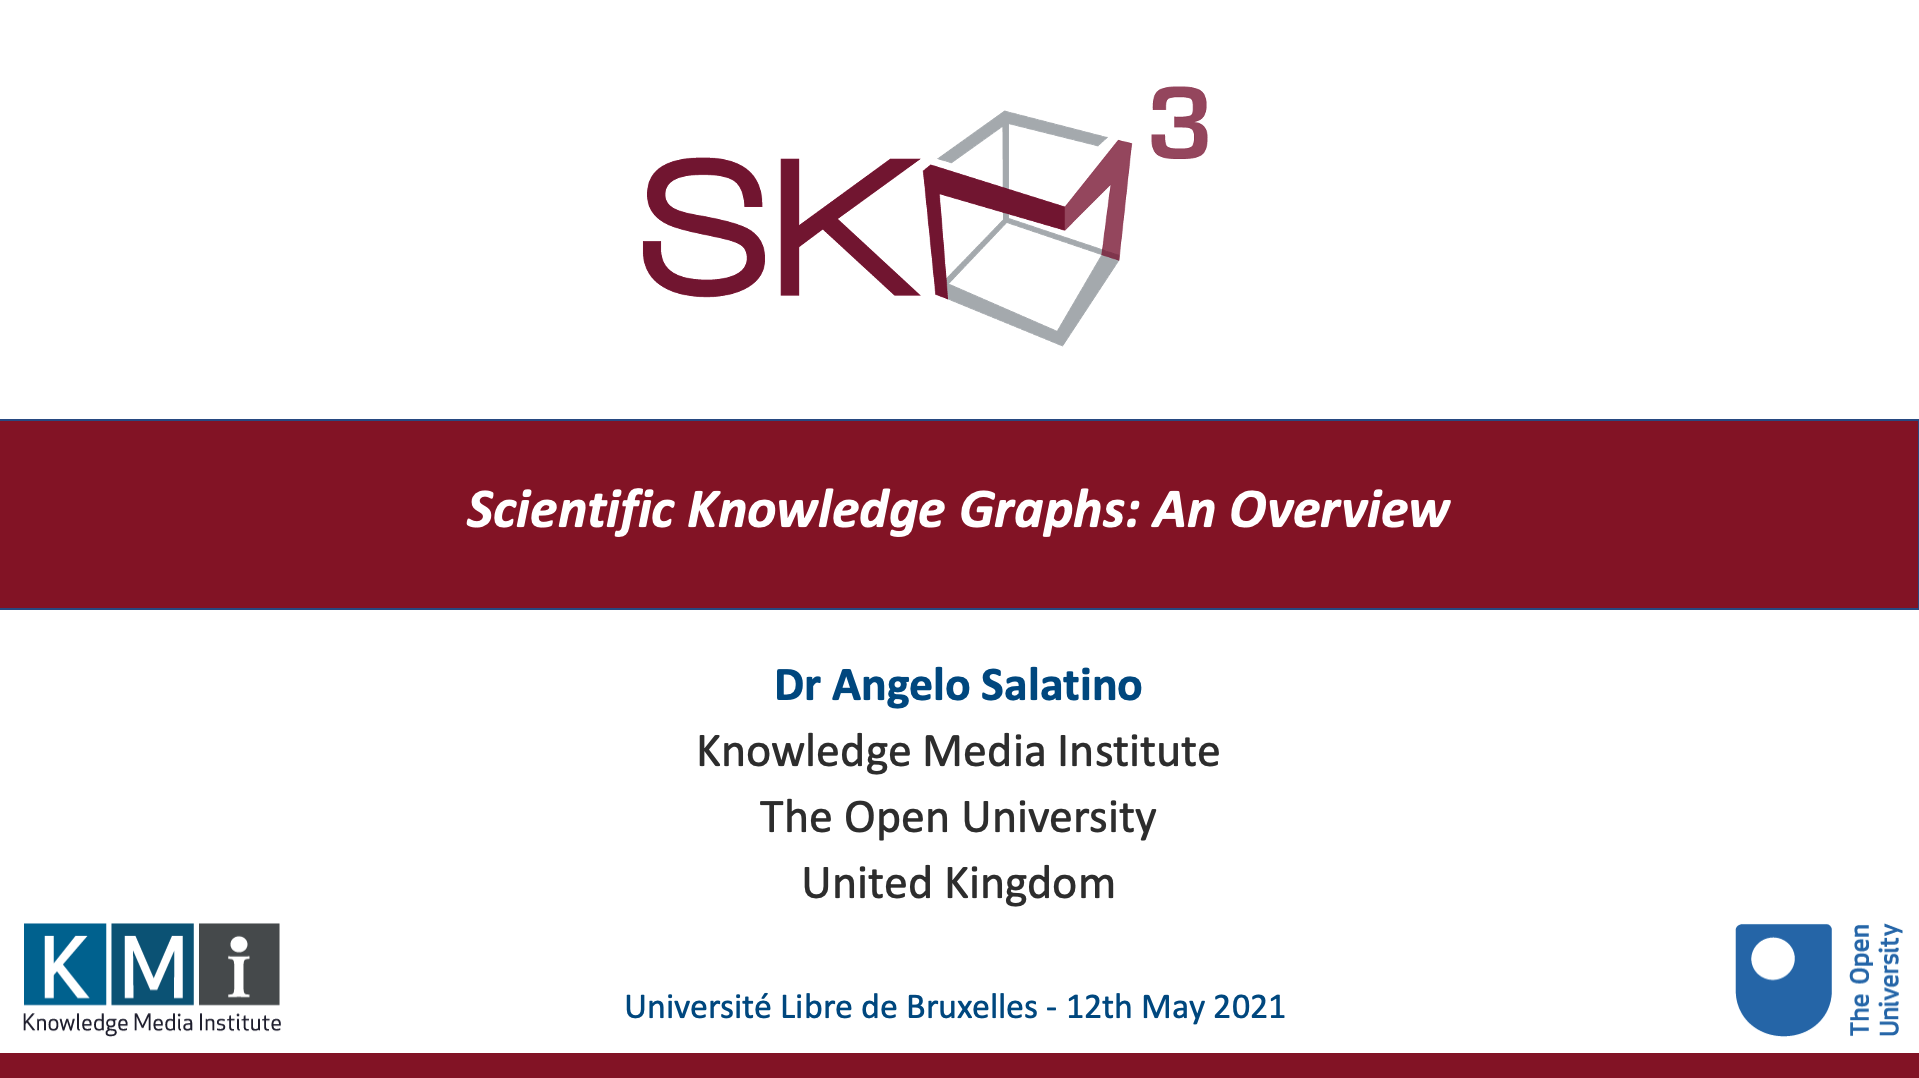 Project - Scientific Knowledge Graphs: an Overview